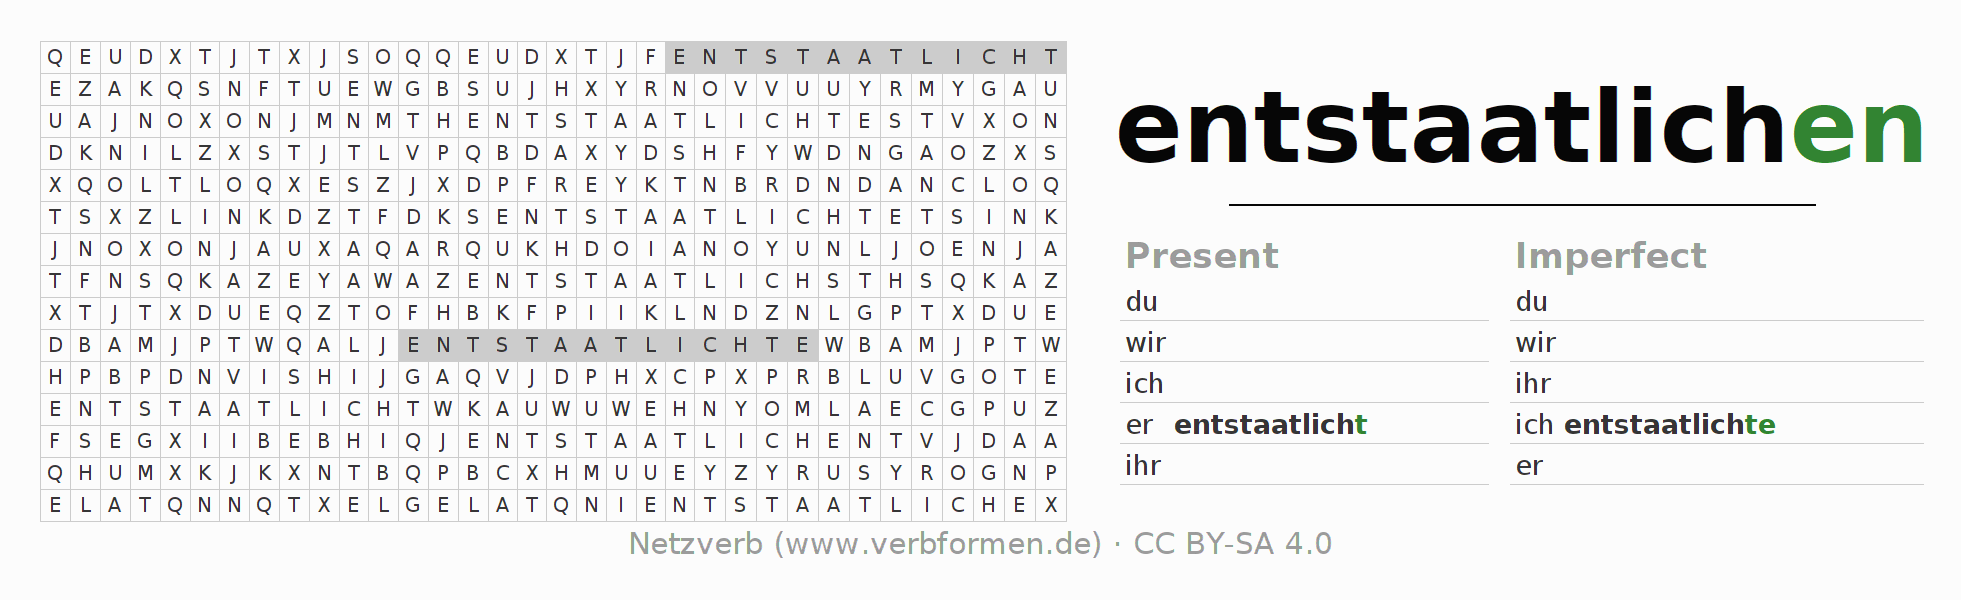 Word search puzzle for the conjugation of the verb entstaatlichen